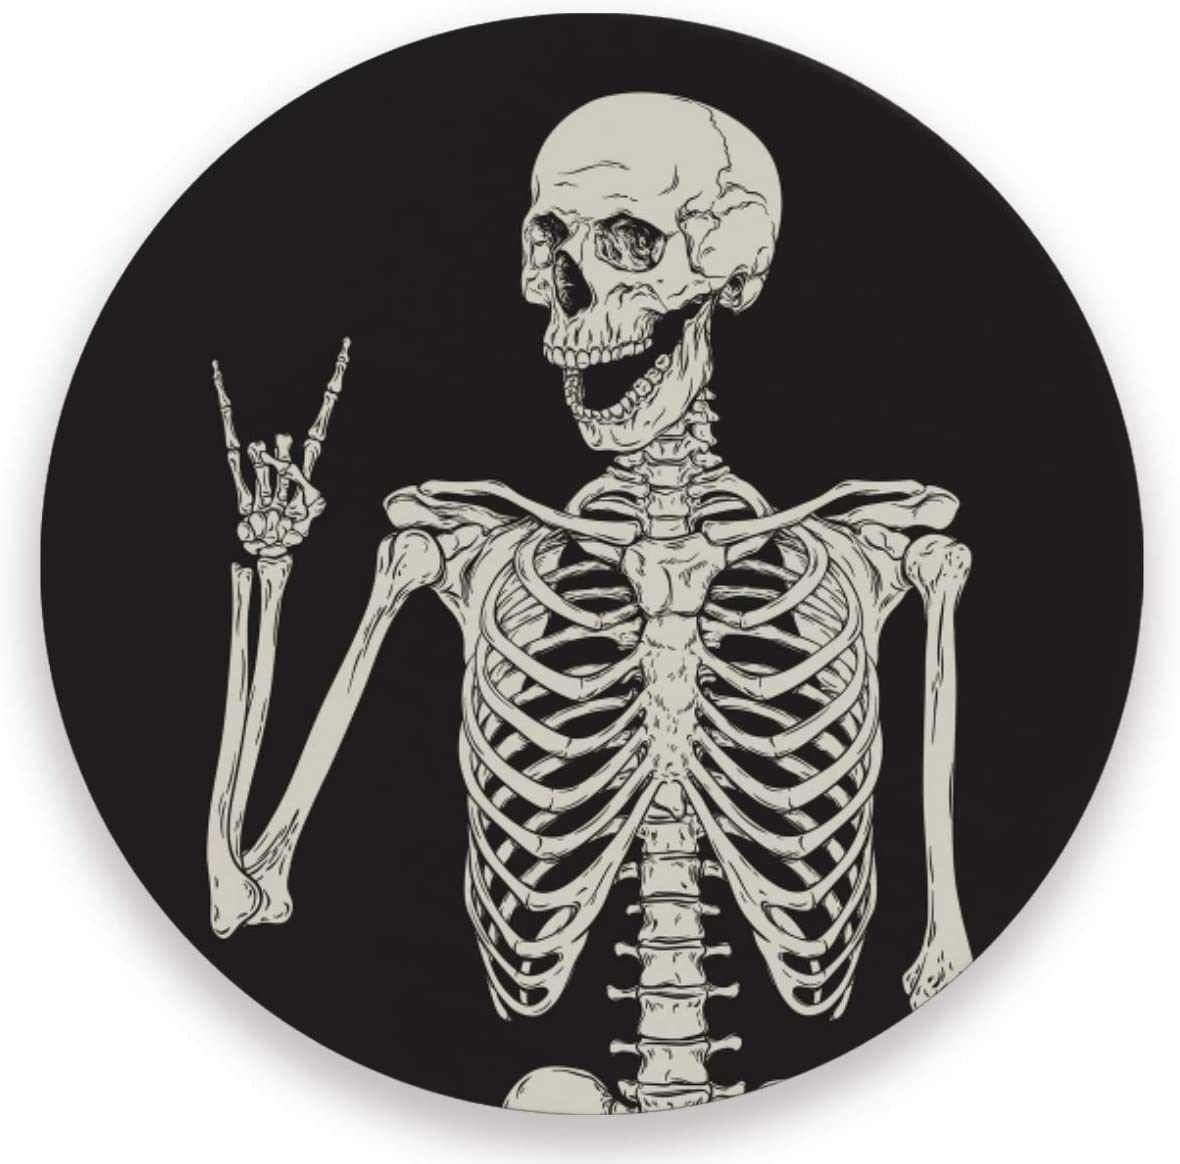 Olinyou Funny Human Skeleton Black Coaster for Drinks 1 Pieces Absorbent Ceramic Stone Coasters with Cork Base